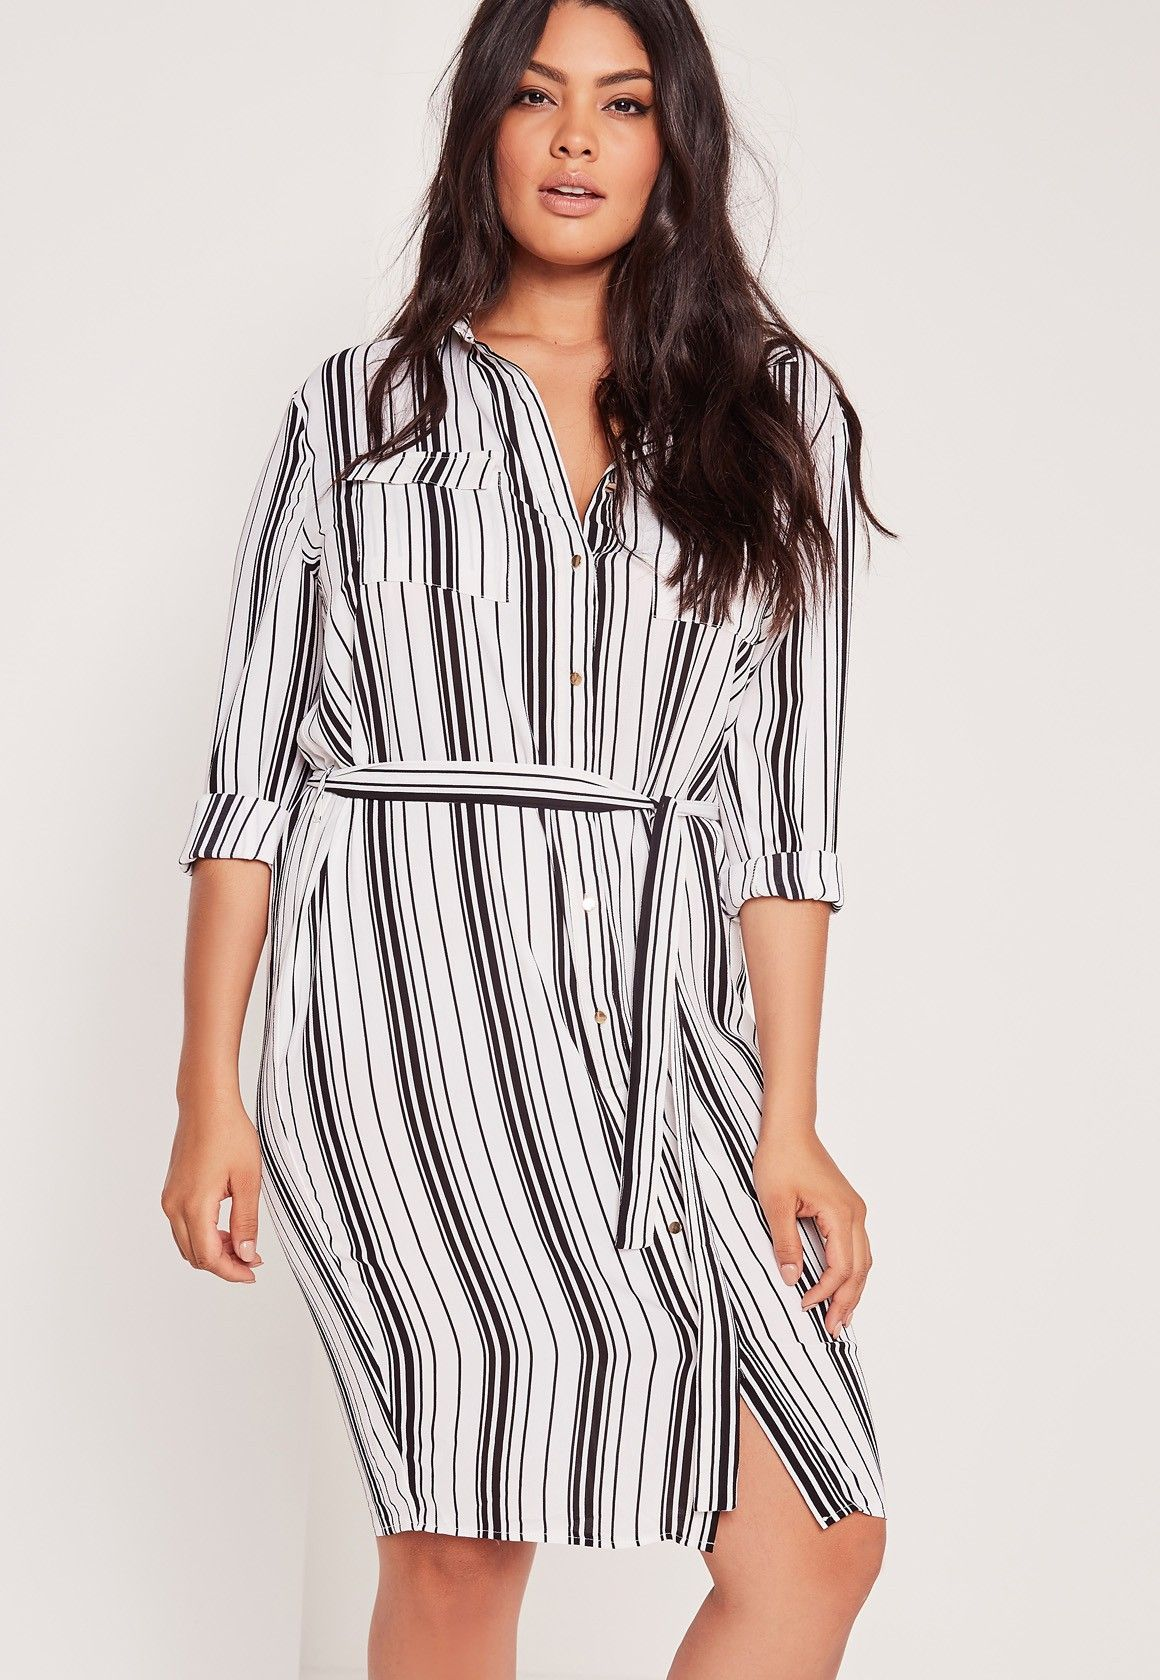 6db06c4a6459 Missguided - Plus Size Stripe Belted Shirt Dress White